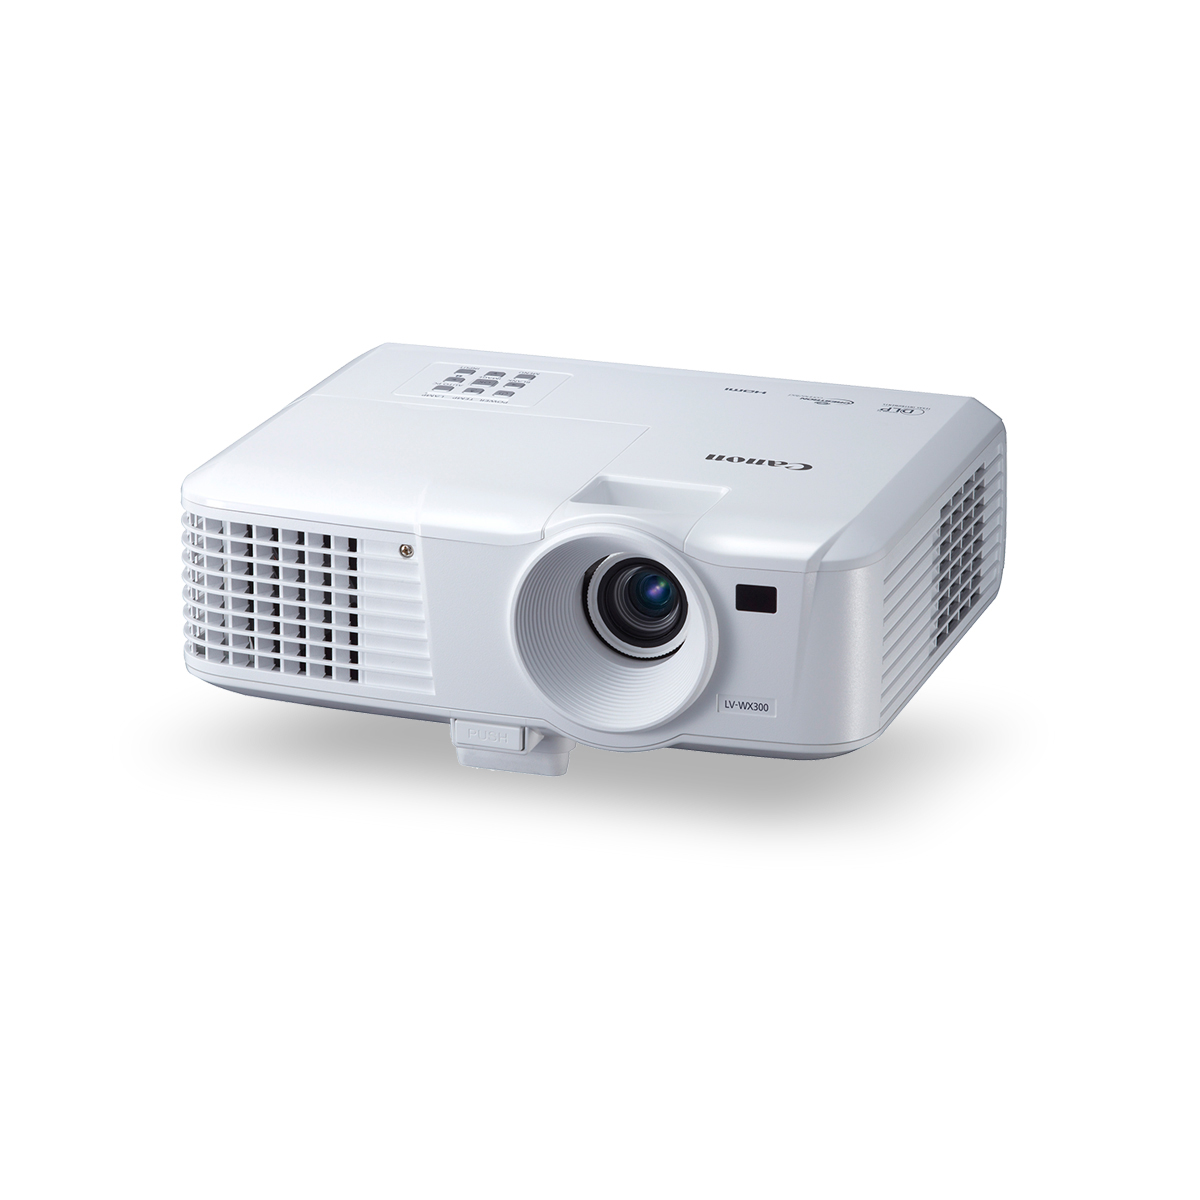 Canon white LV-WX300 projector